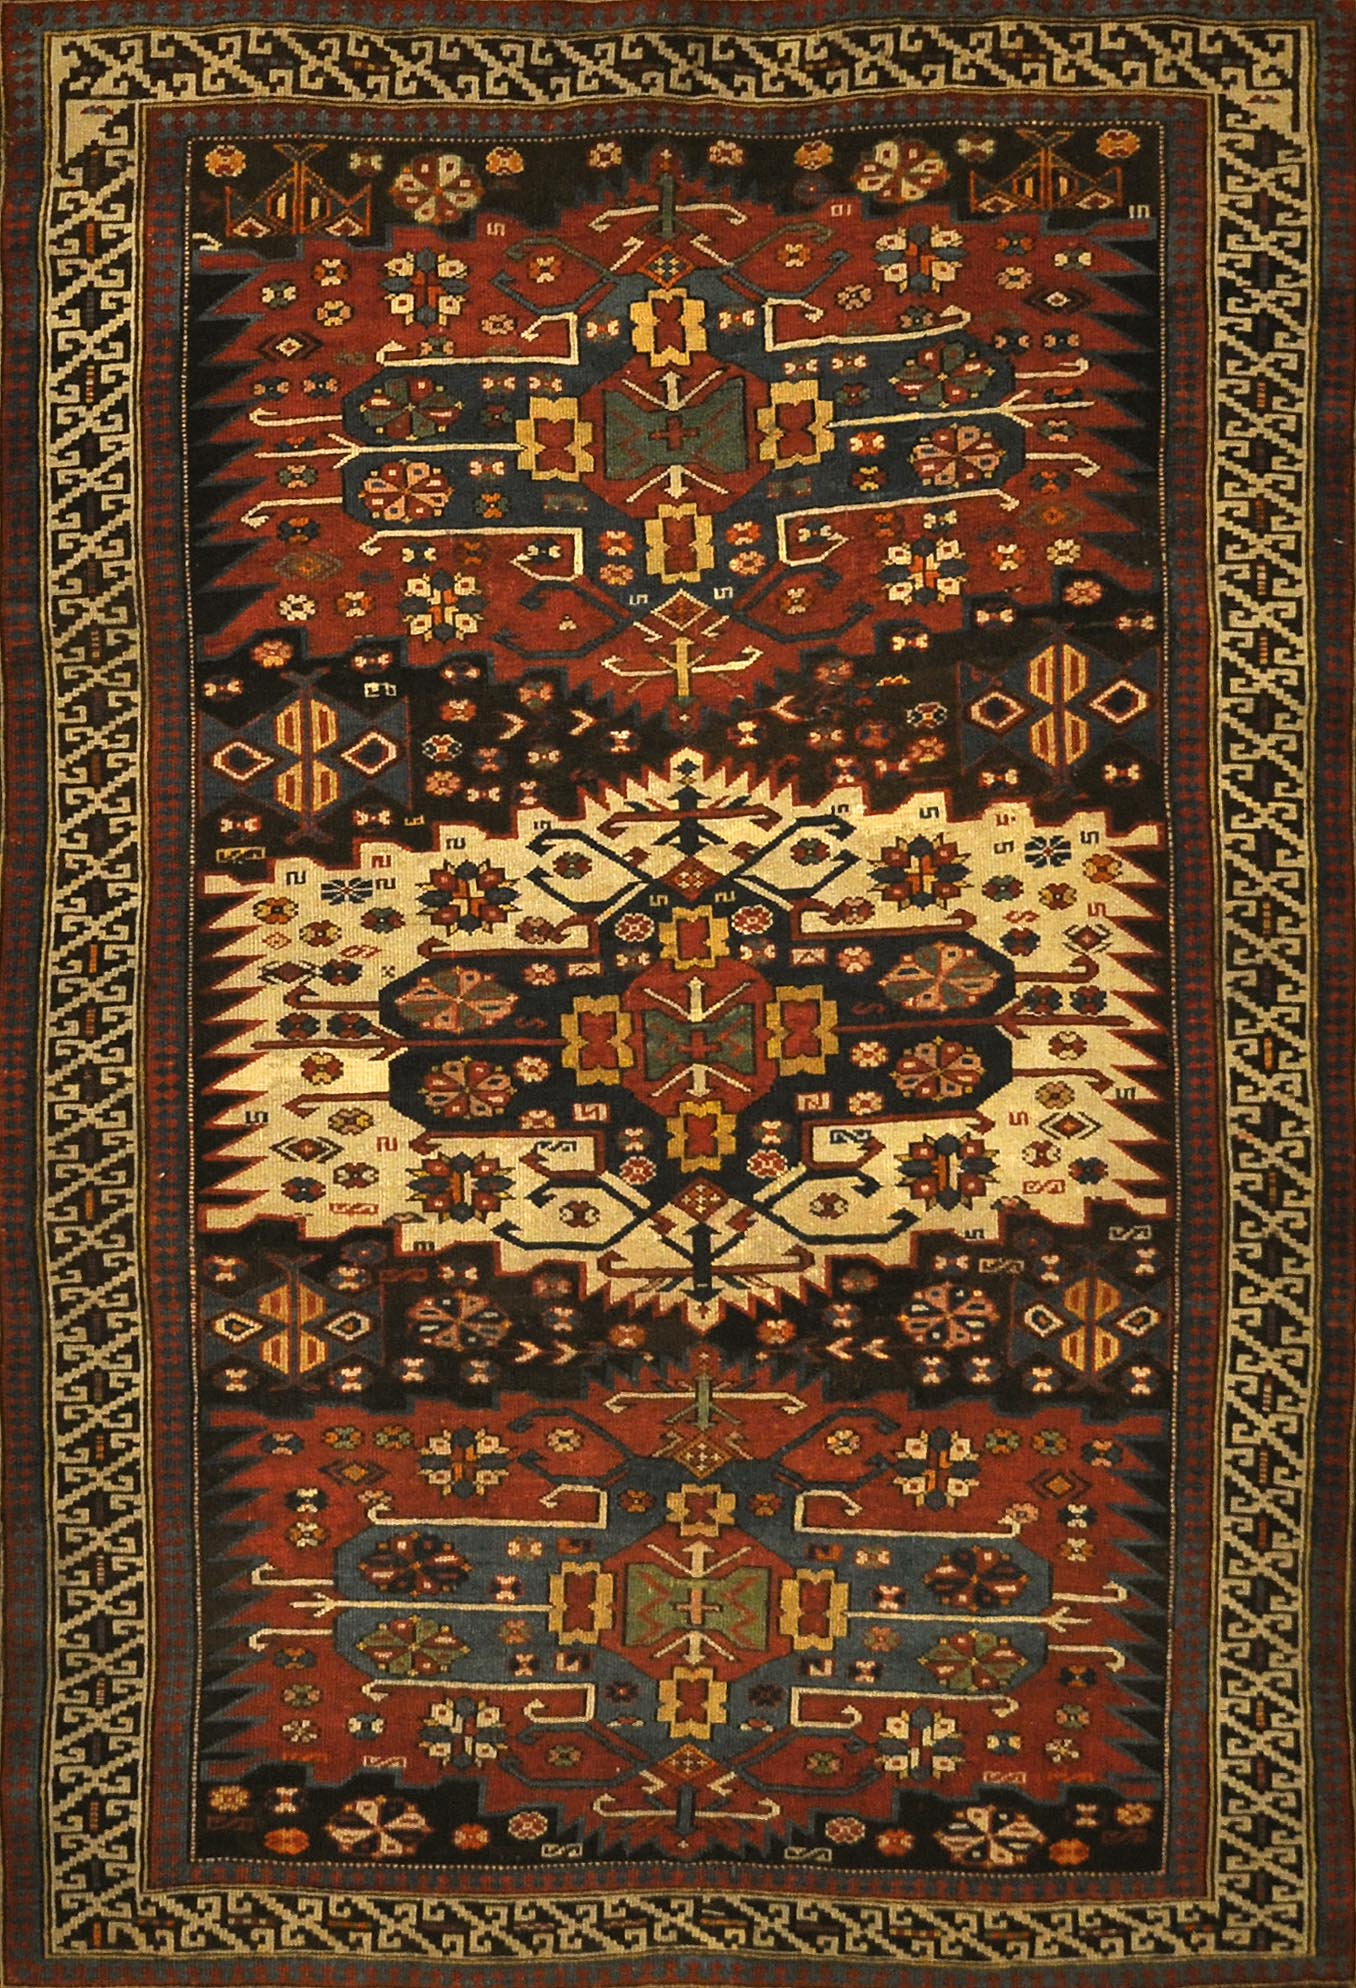 Antique Shirvan Rug Circa 1880. A piece of genuine authentic antique woven carpet art sold by Santa Barbara Design Center Rugs and More.